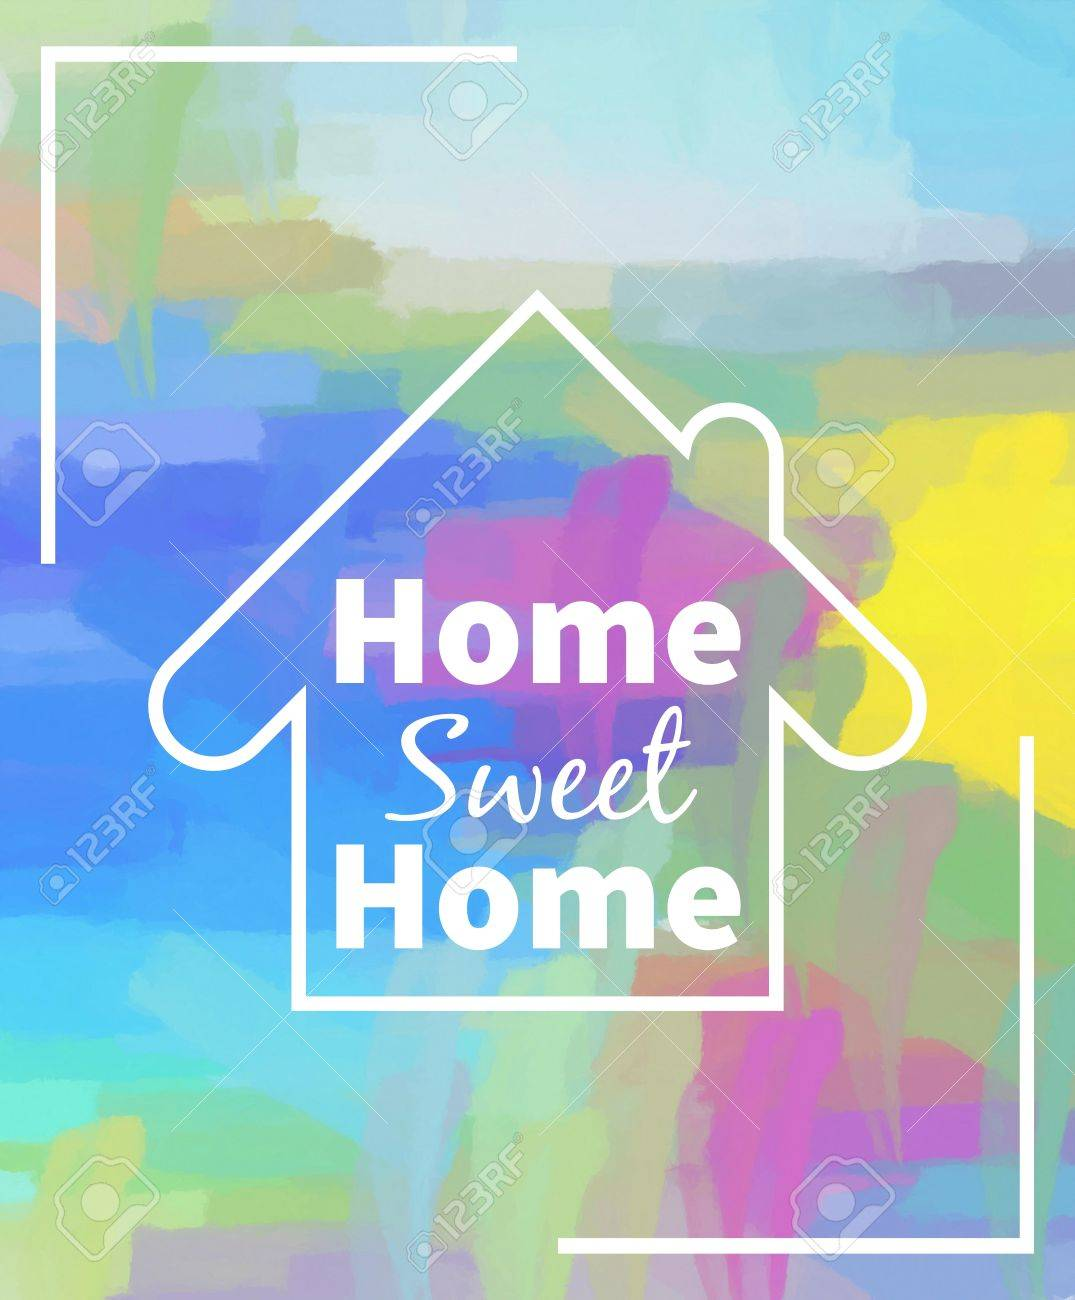 Home Sweet Home Colorful Background Design For Greeting Cards